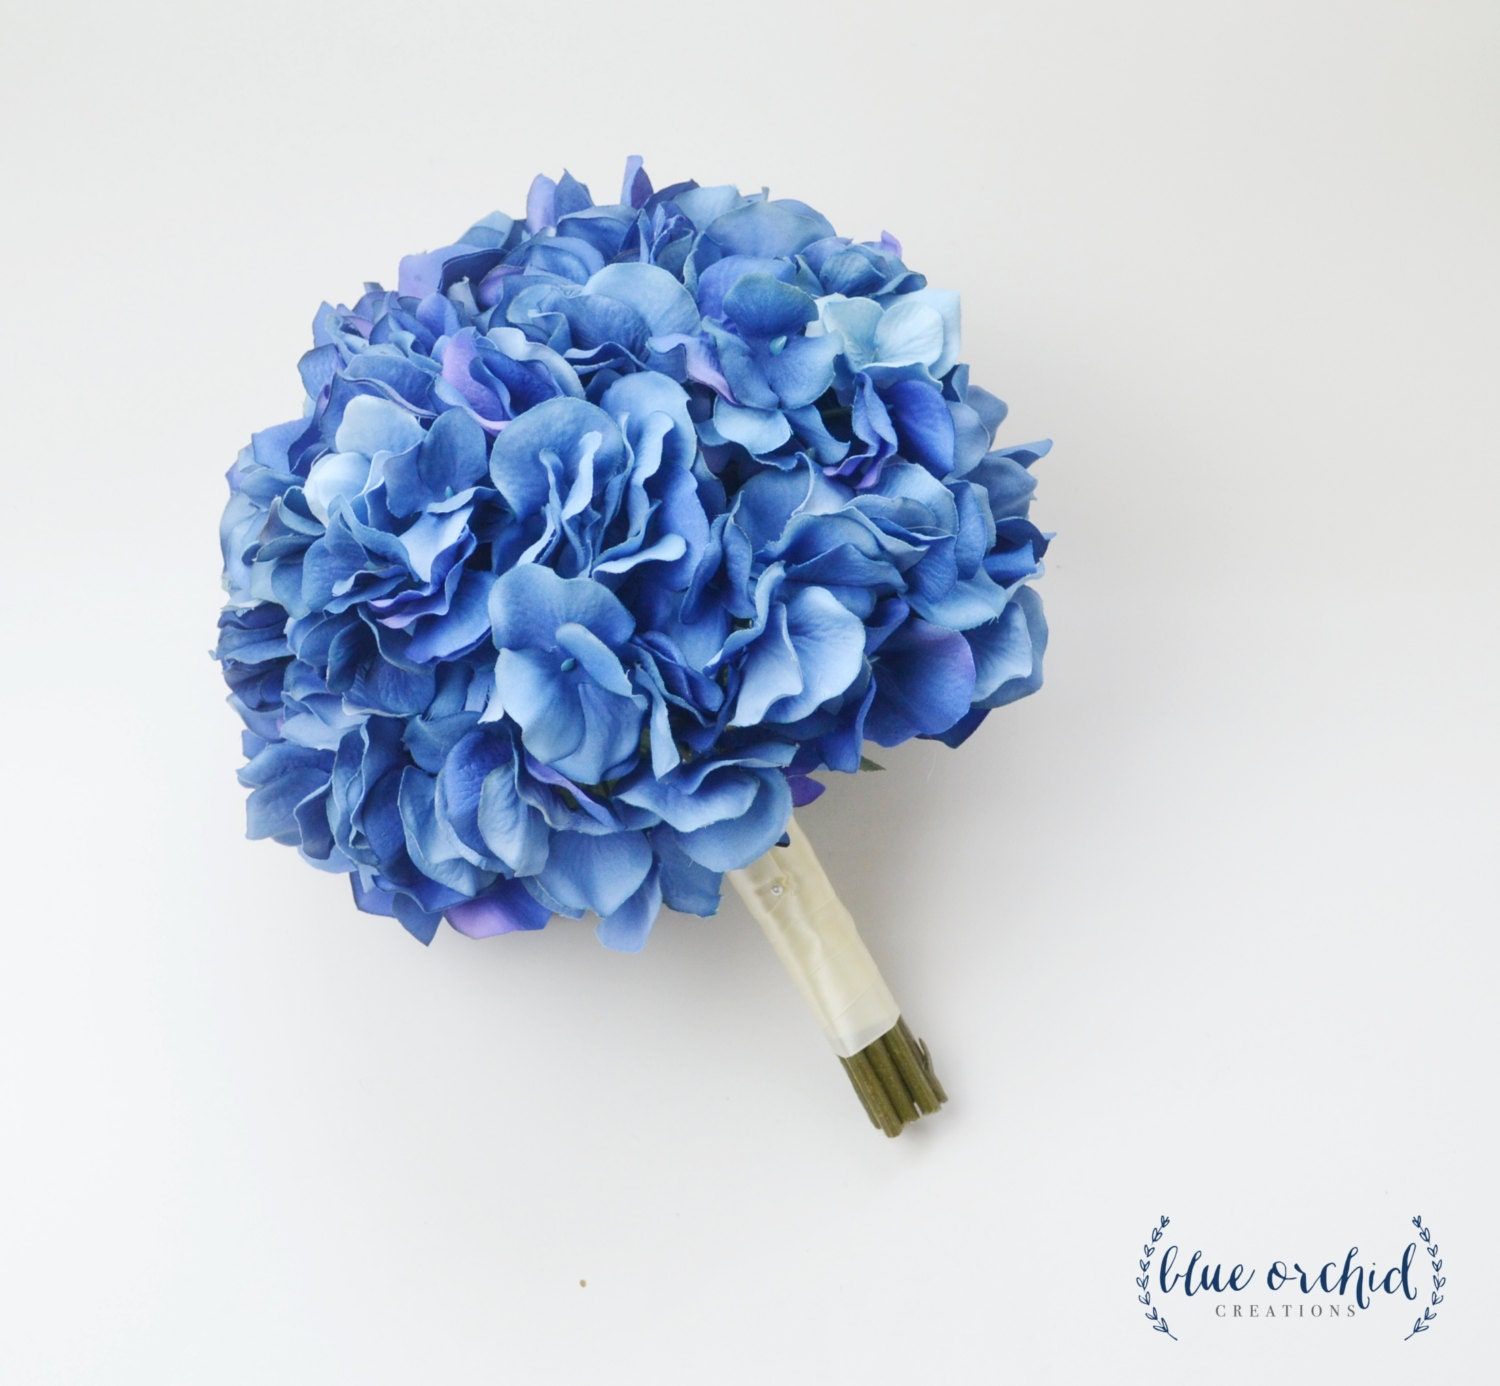 Blue hydrangea bouquet silk bright